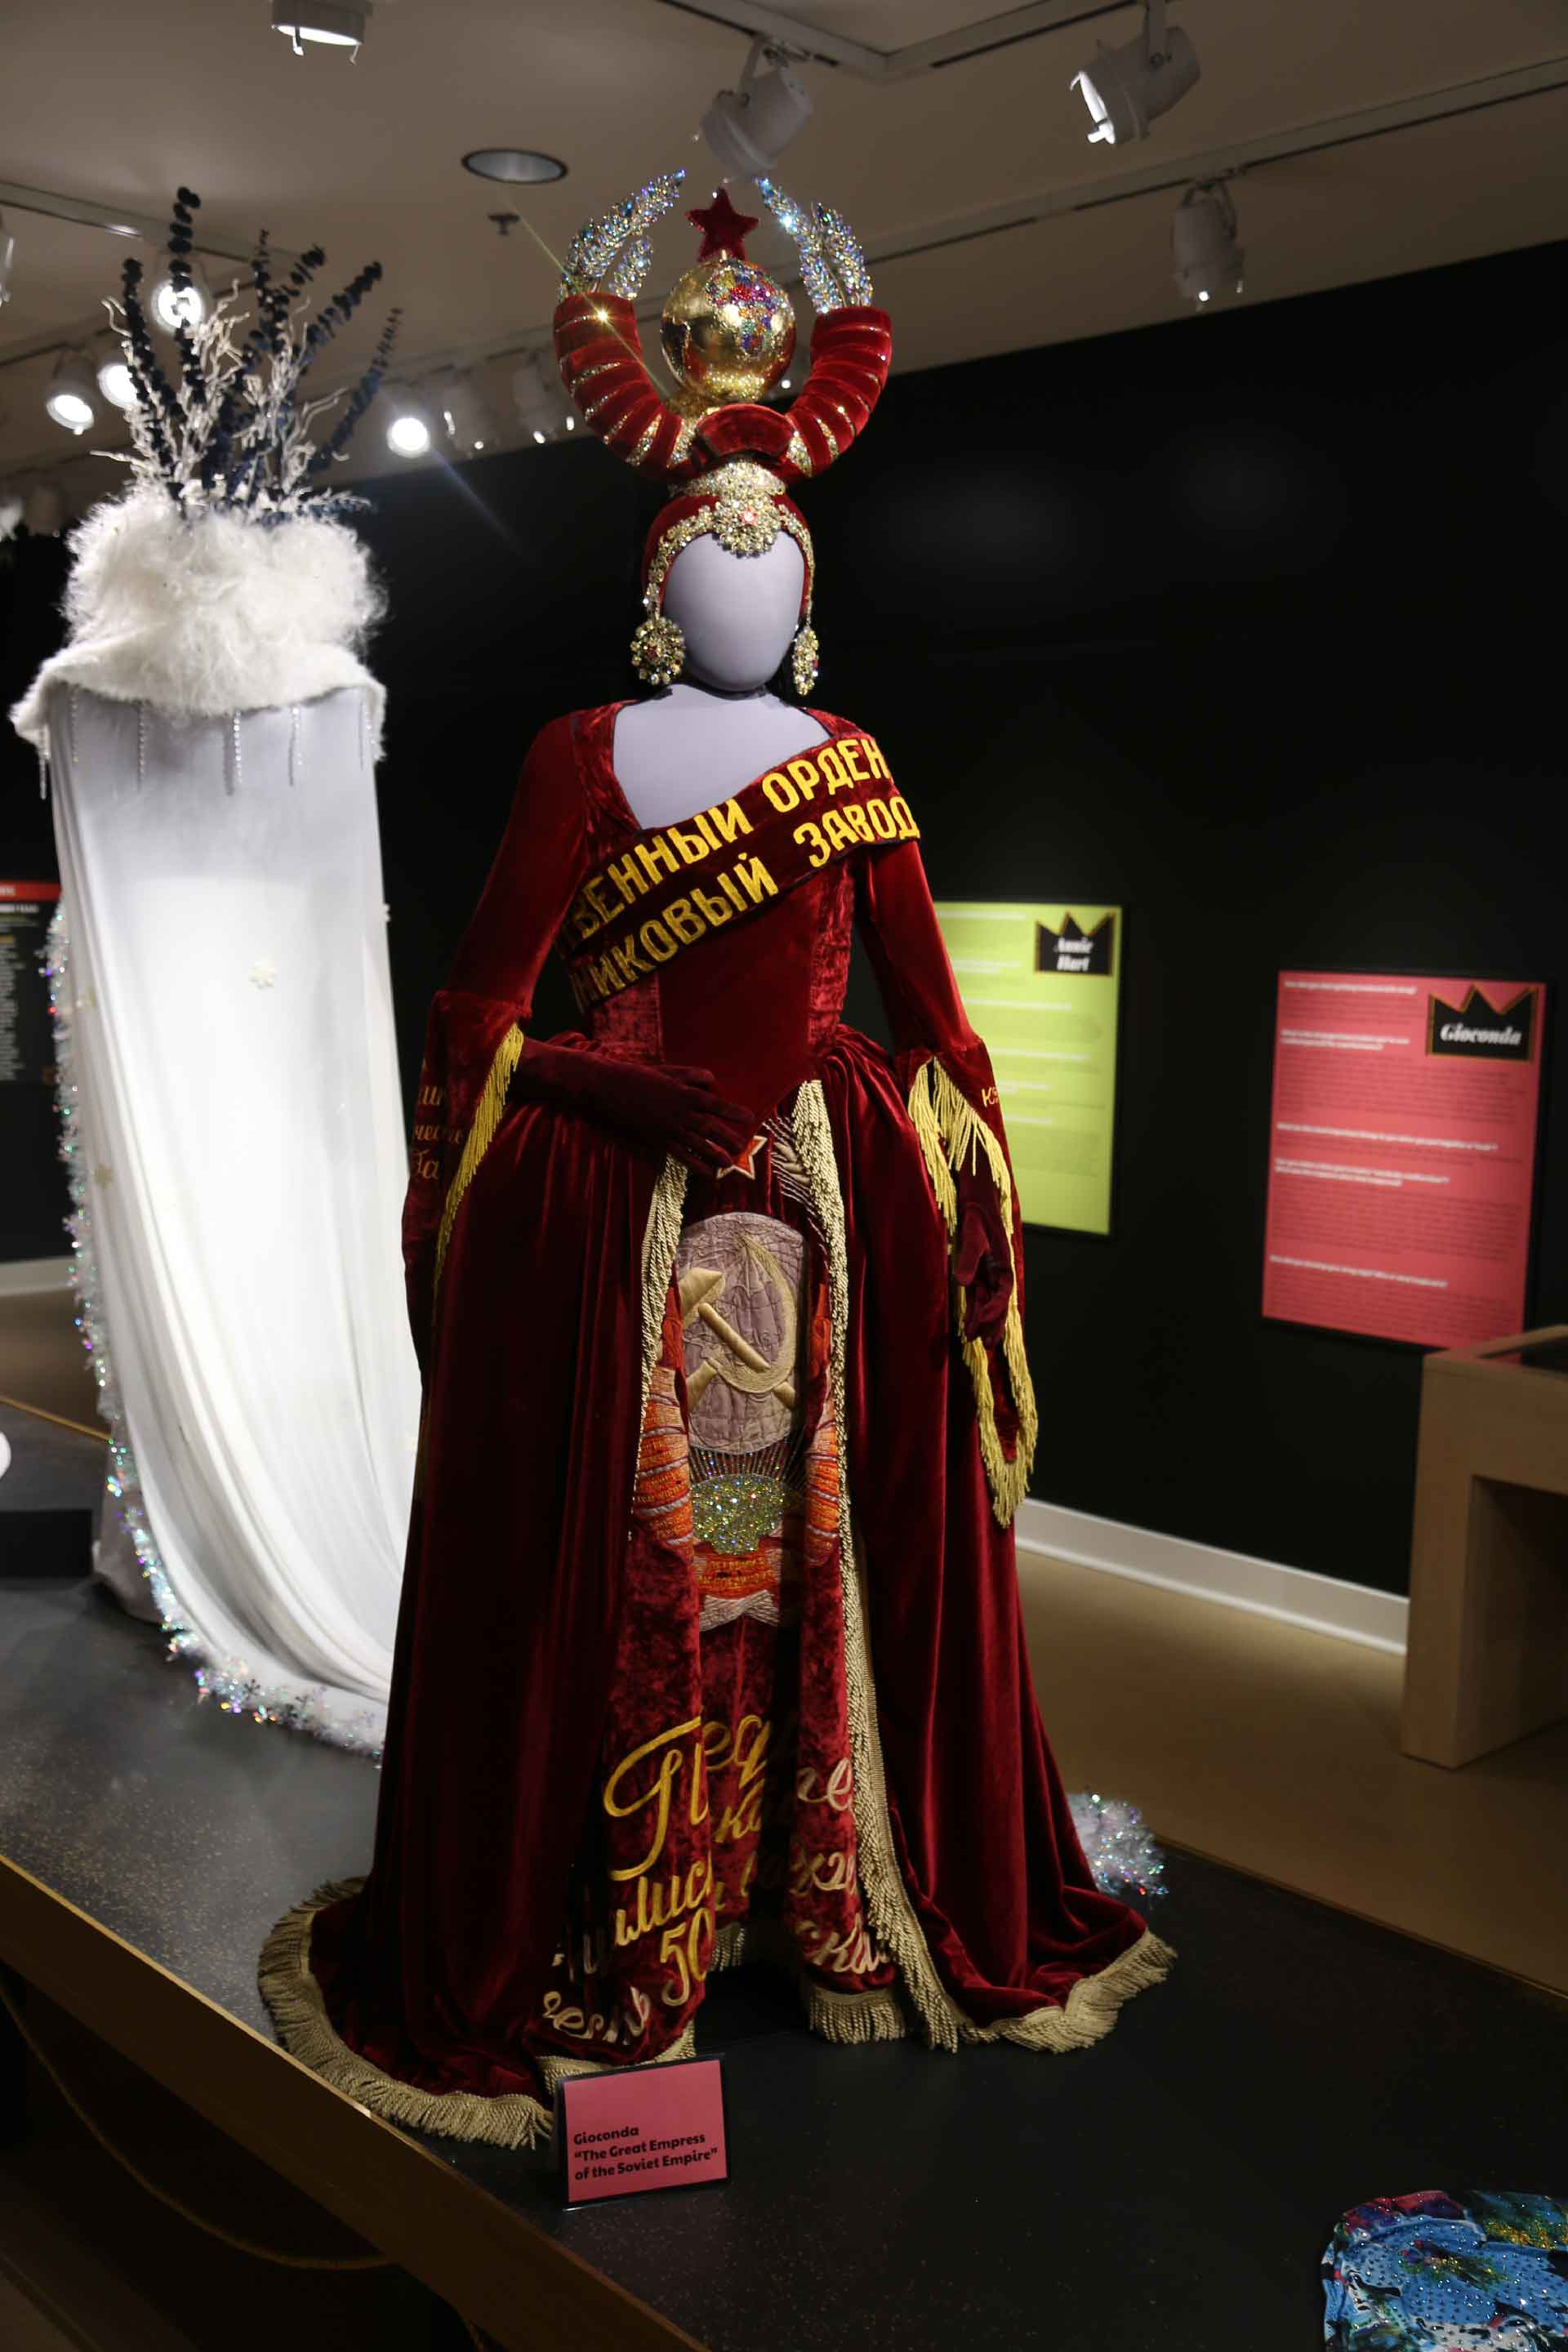 Mannequin in Russian red velvet and gold drag costume